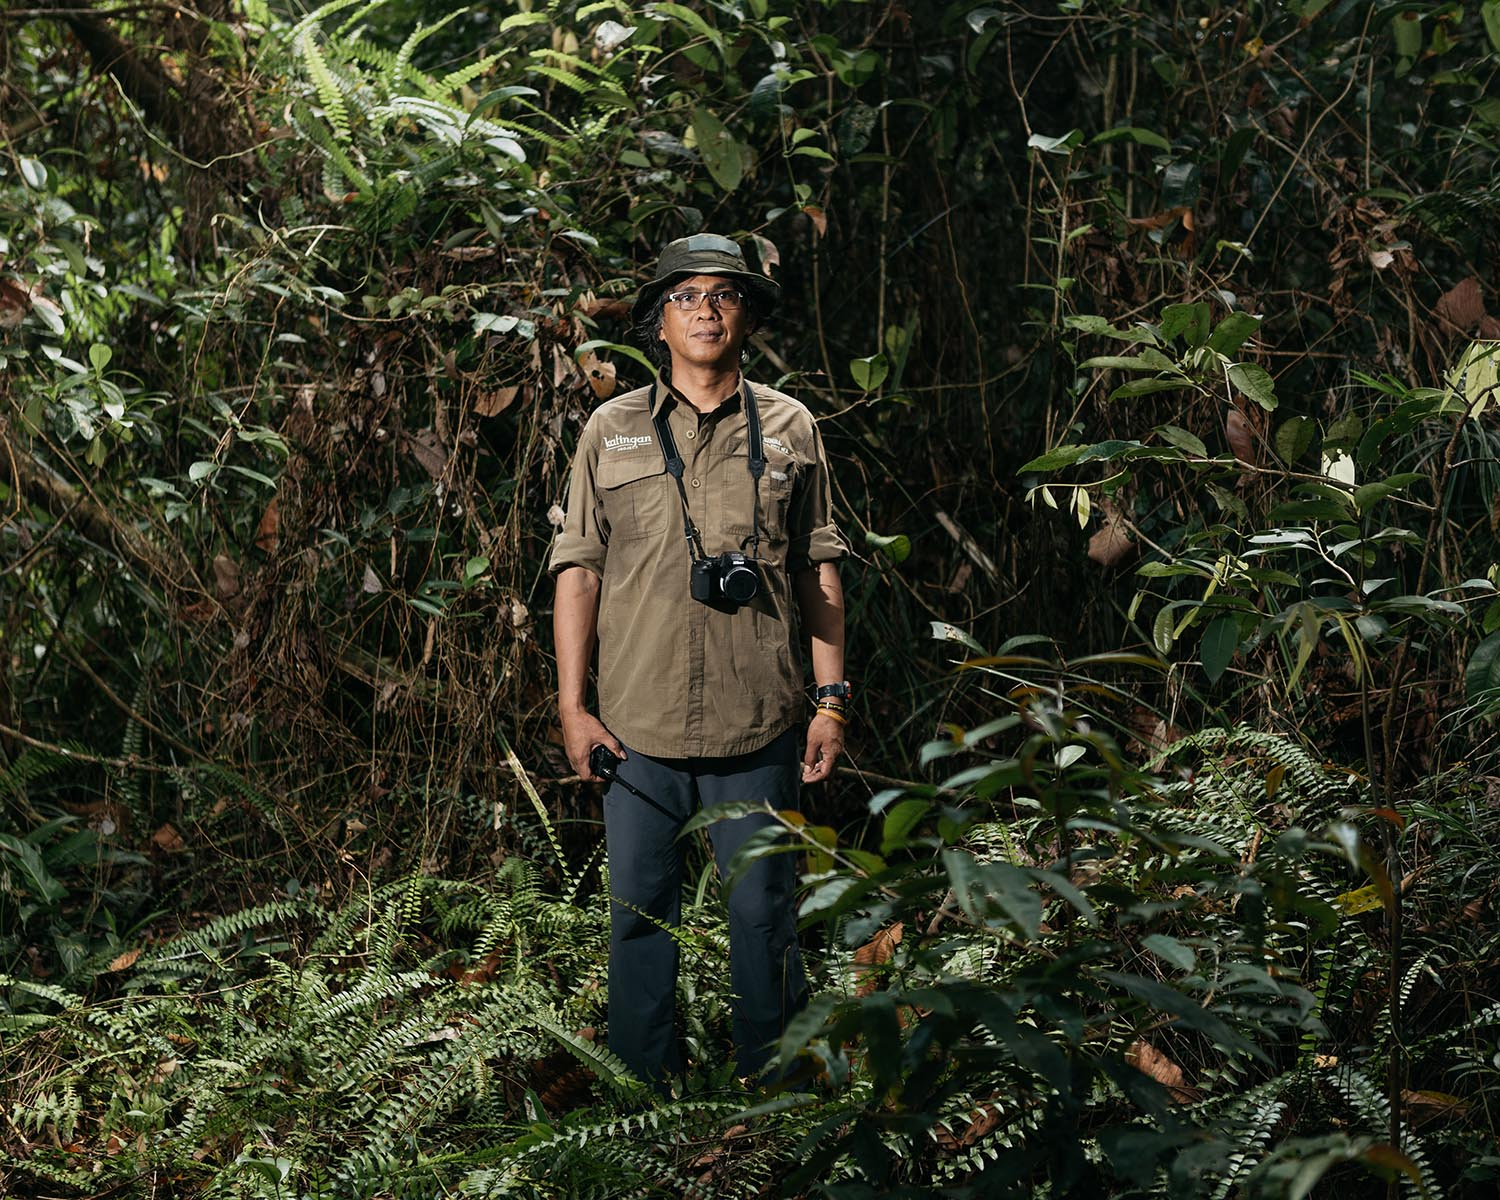 Portrait of Meyner Nusalawo, Protection and Enforcement Manager of PT Rimba Makmur Utama.